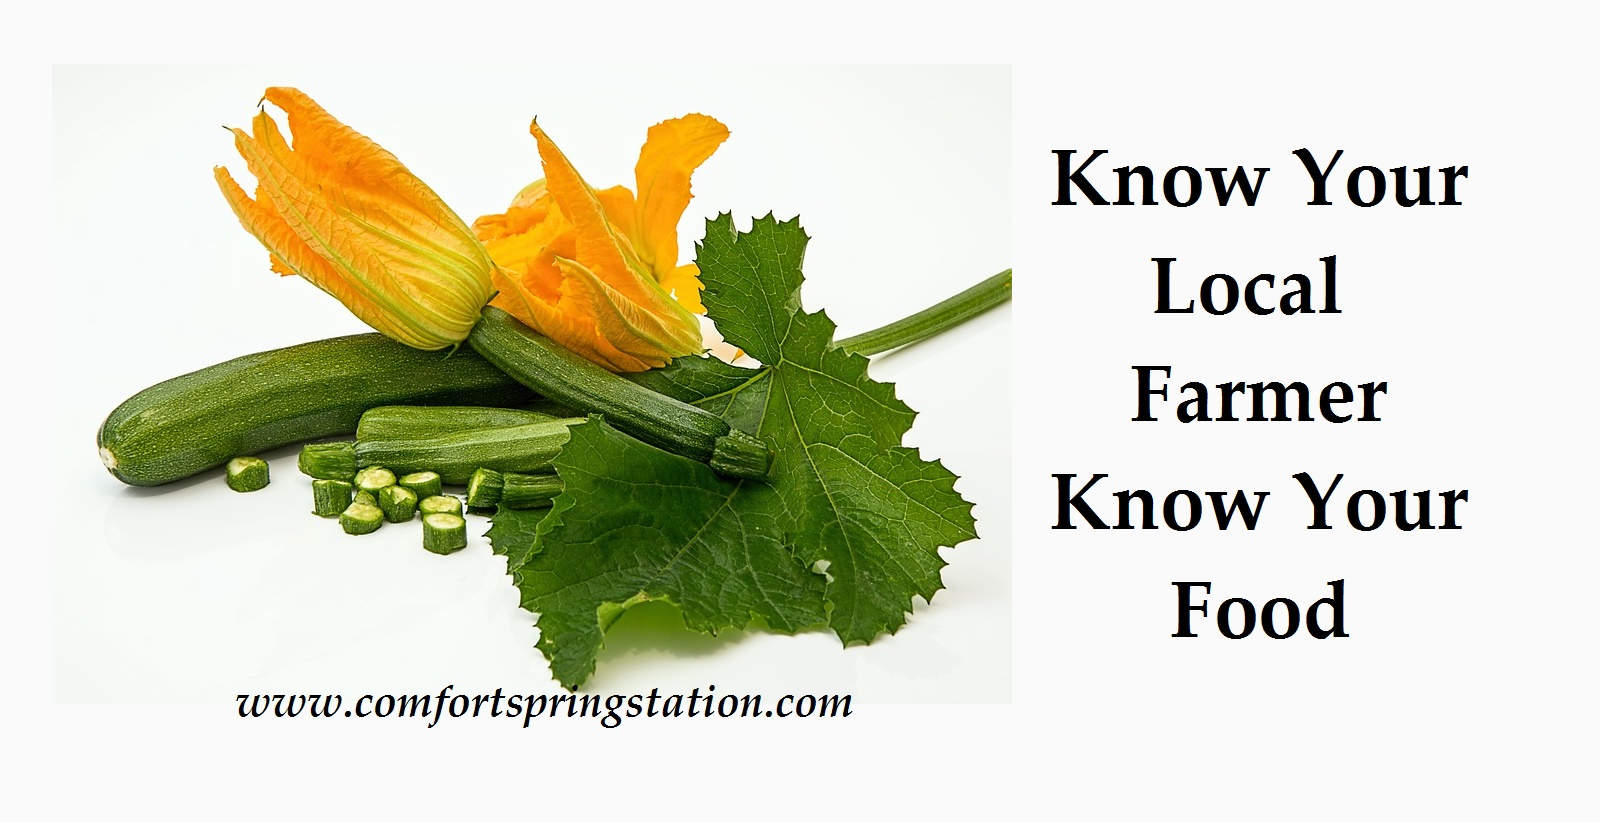 Know Your Local Farmer, Know Your Food